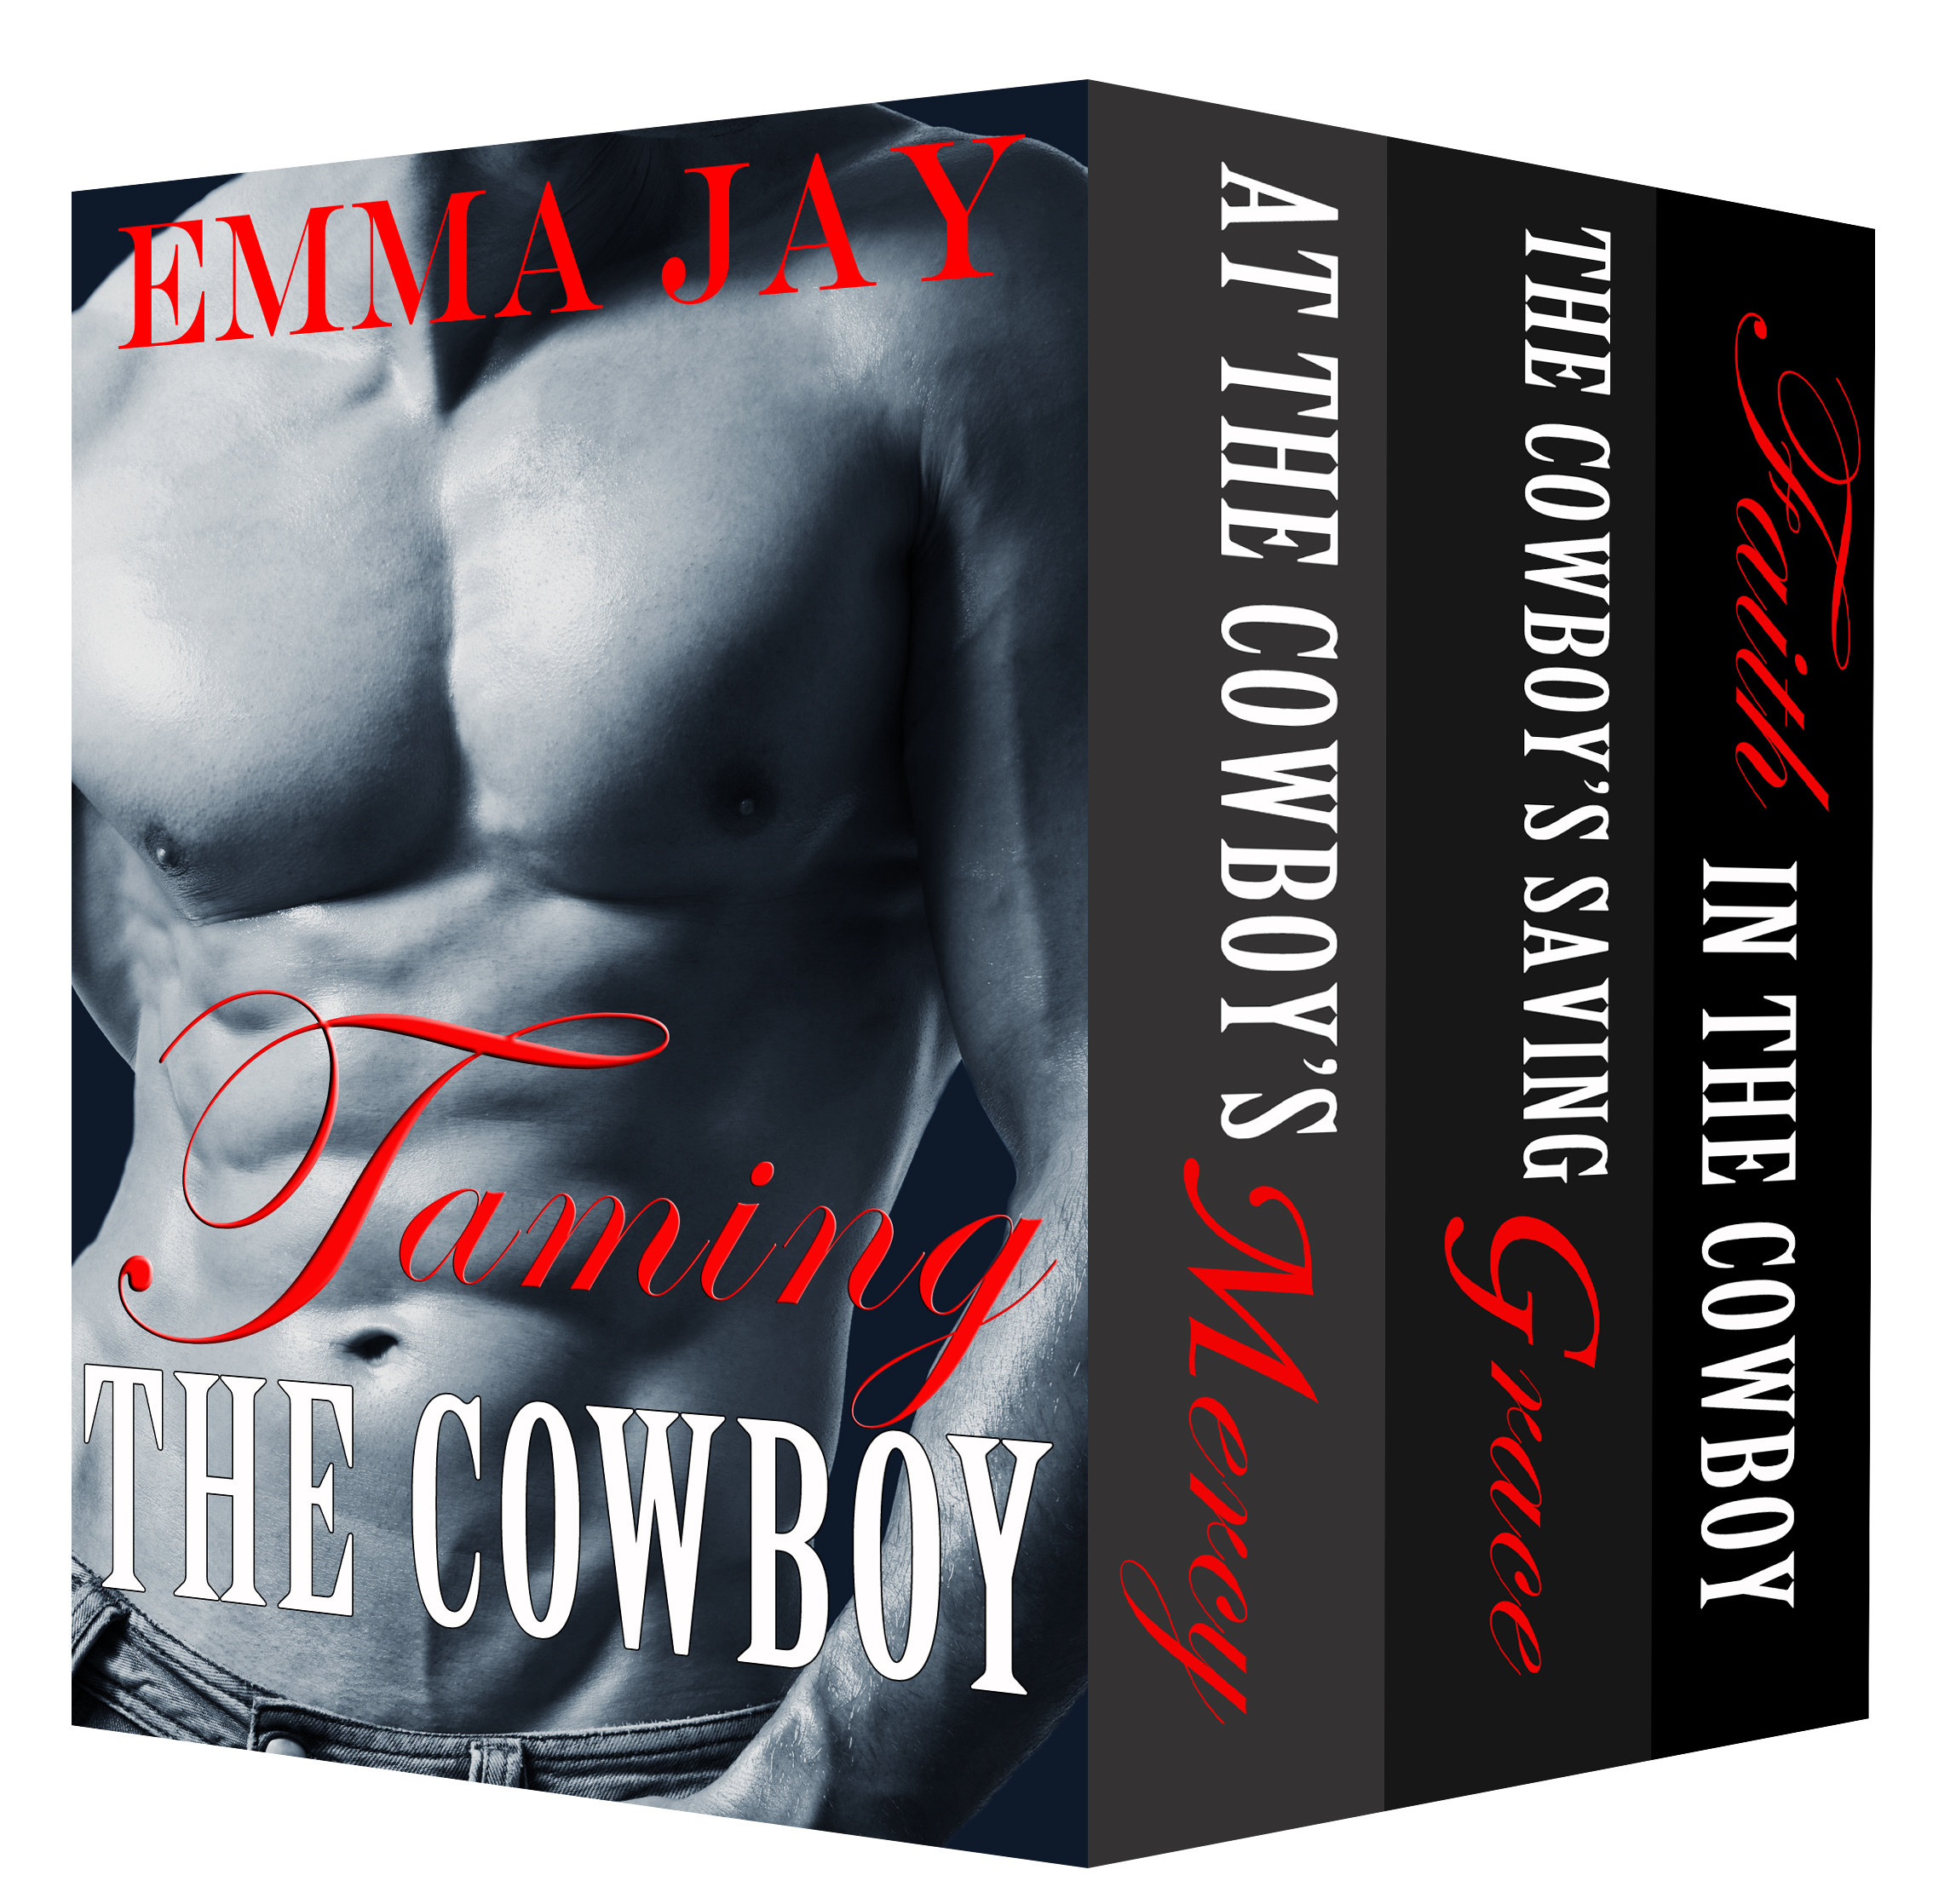 Emma Jay is here with her very hot cowboys